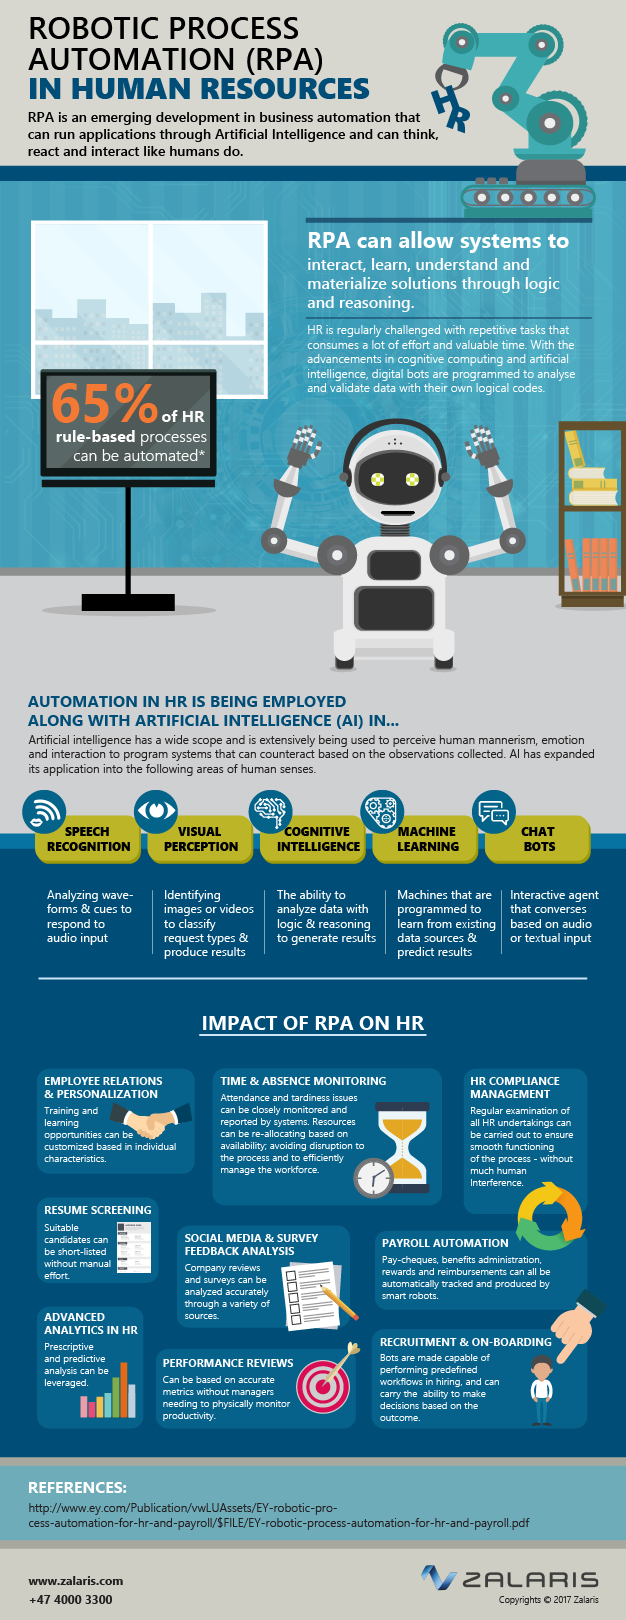 RPA in HR